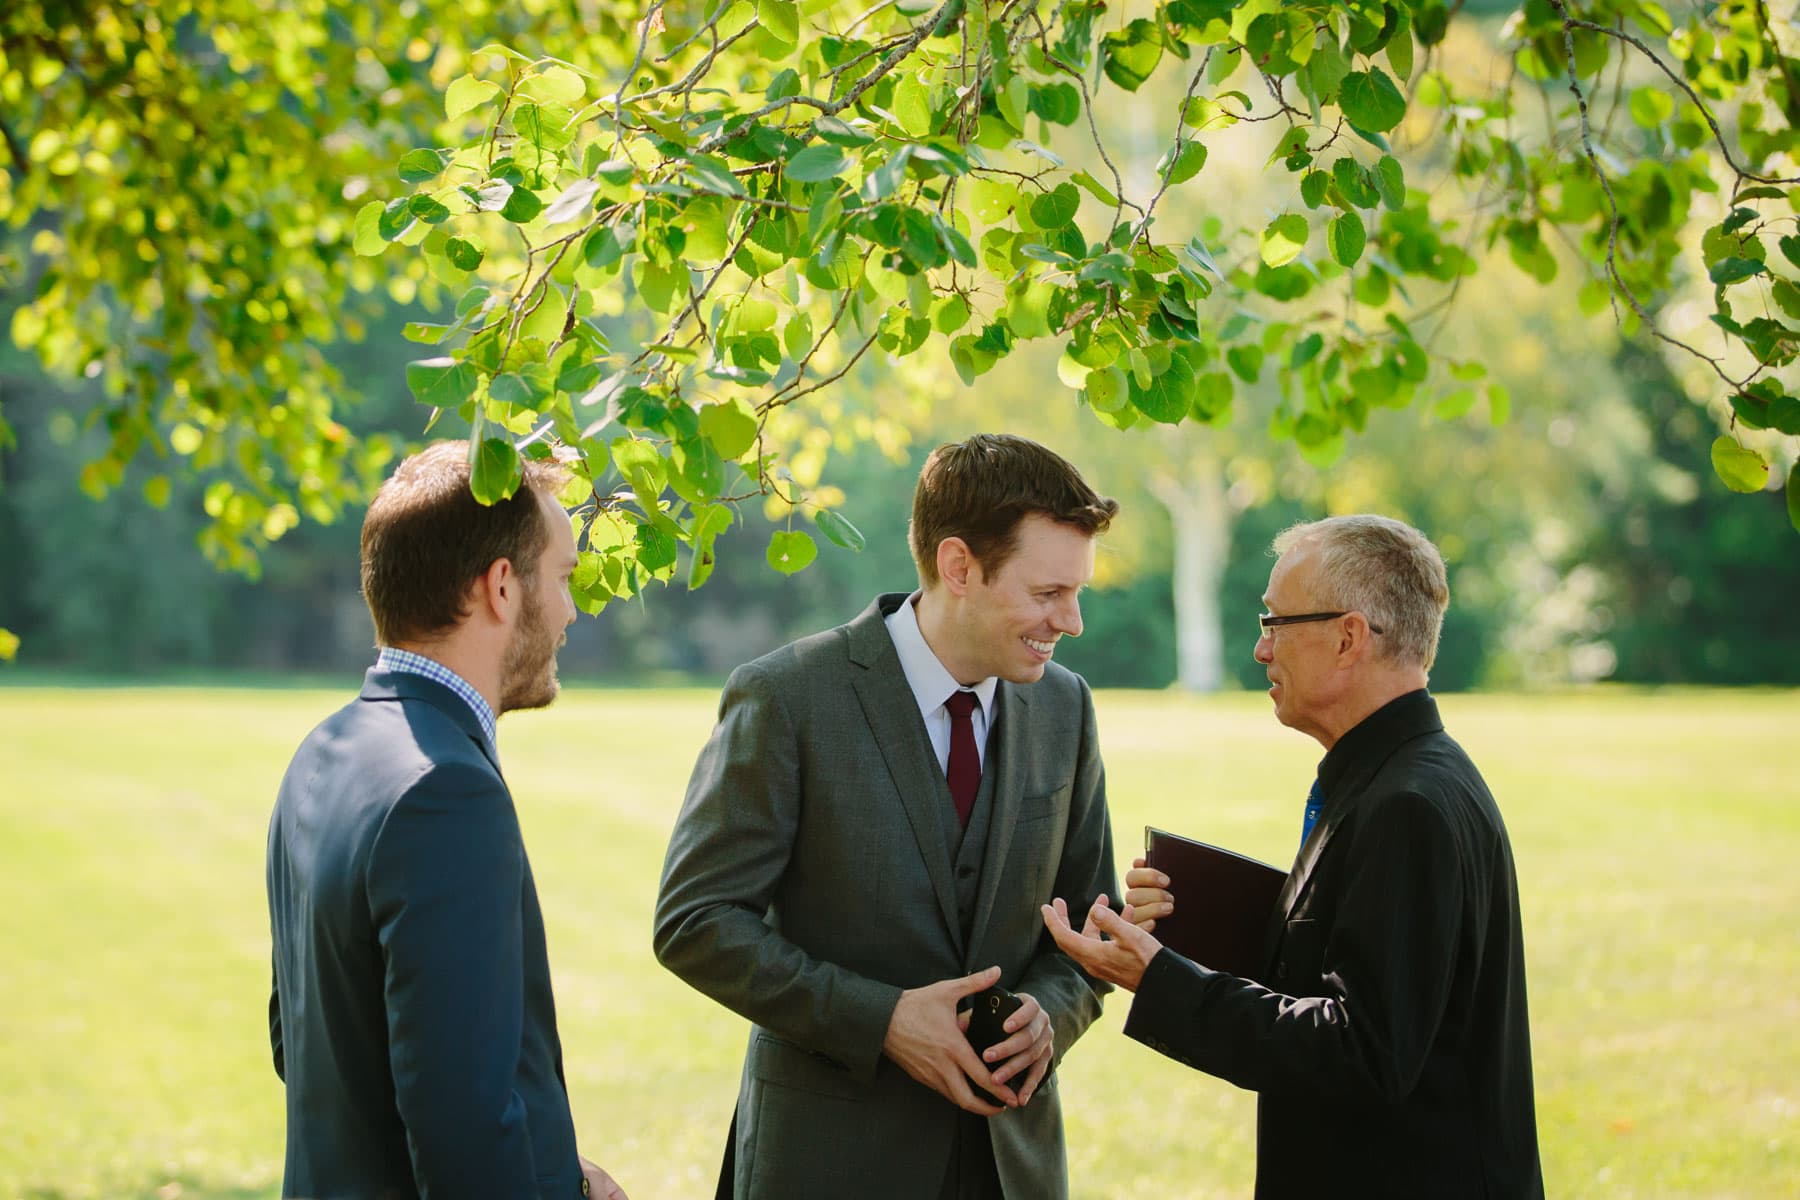 Three men, including the groom, stand in a yard underneath birch tree branches in these backyard wedding photos.